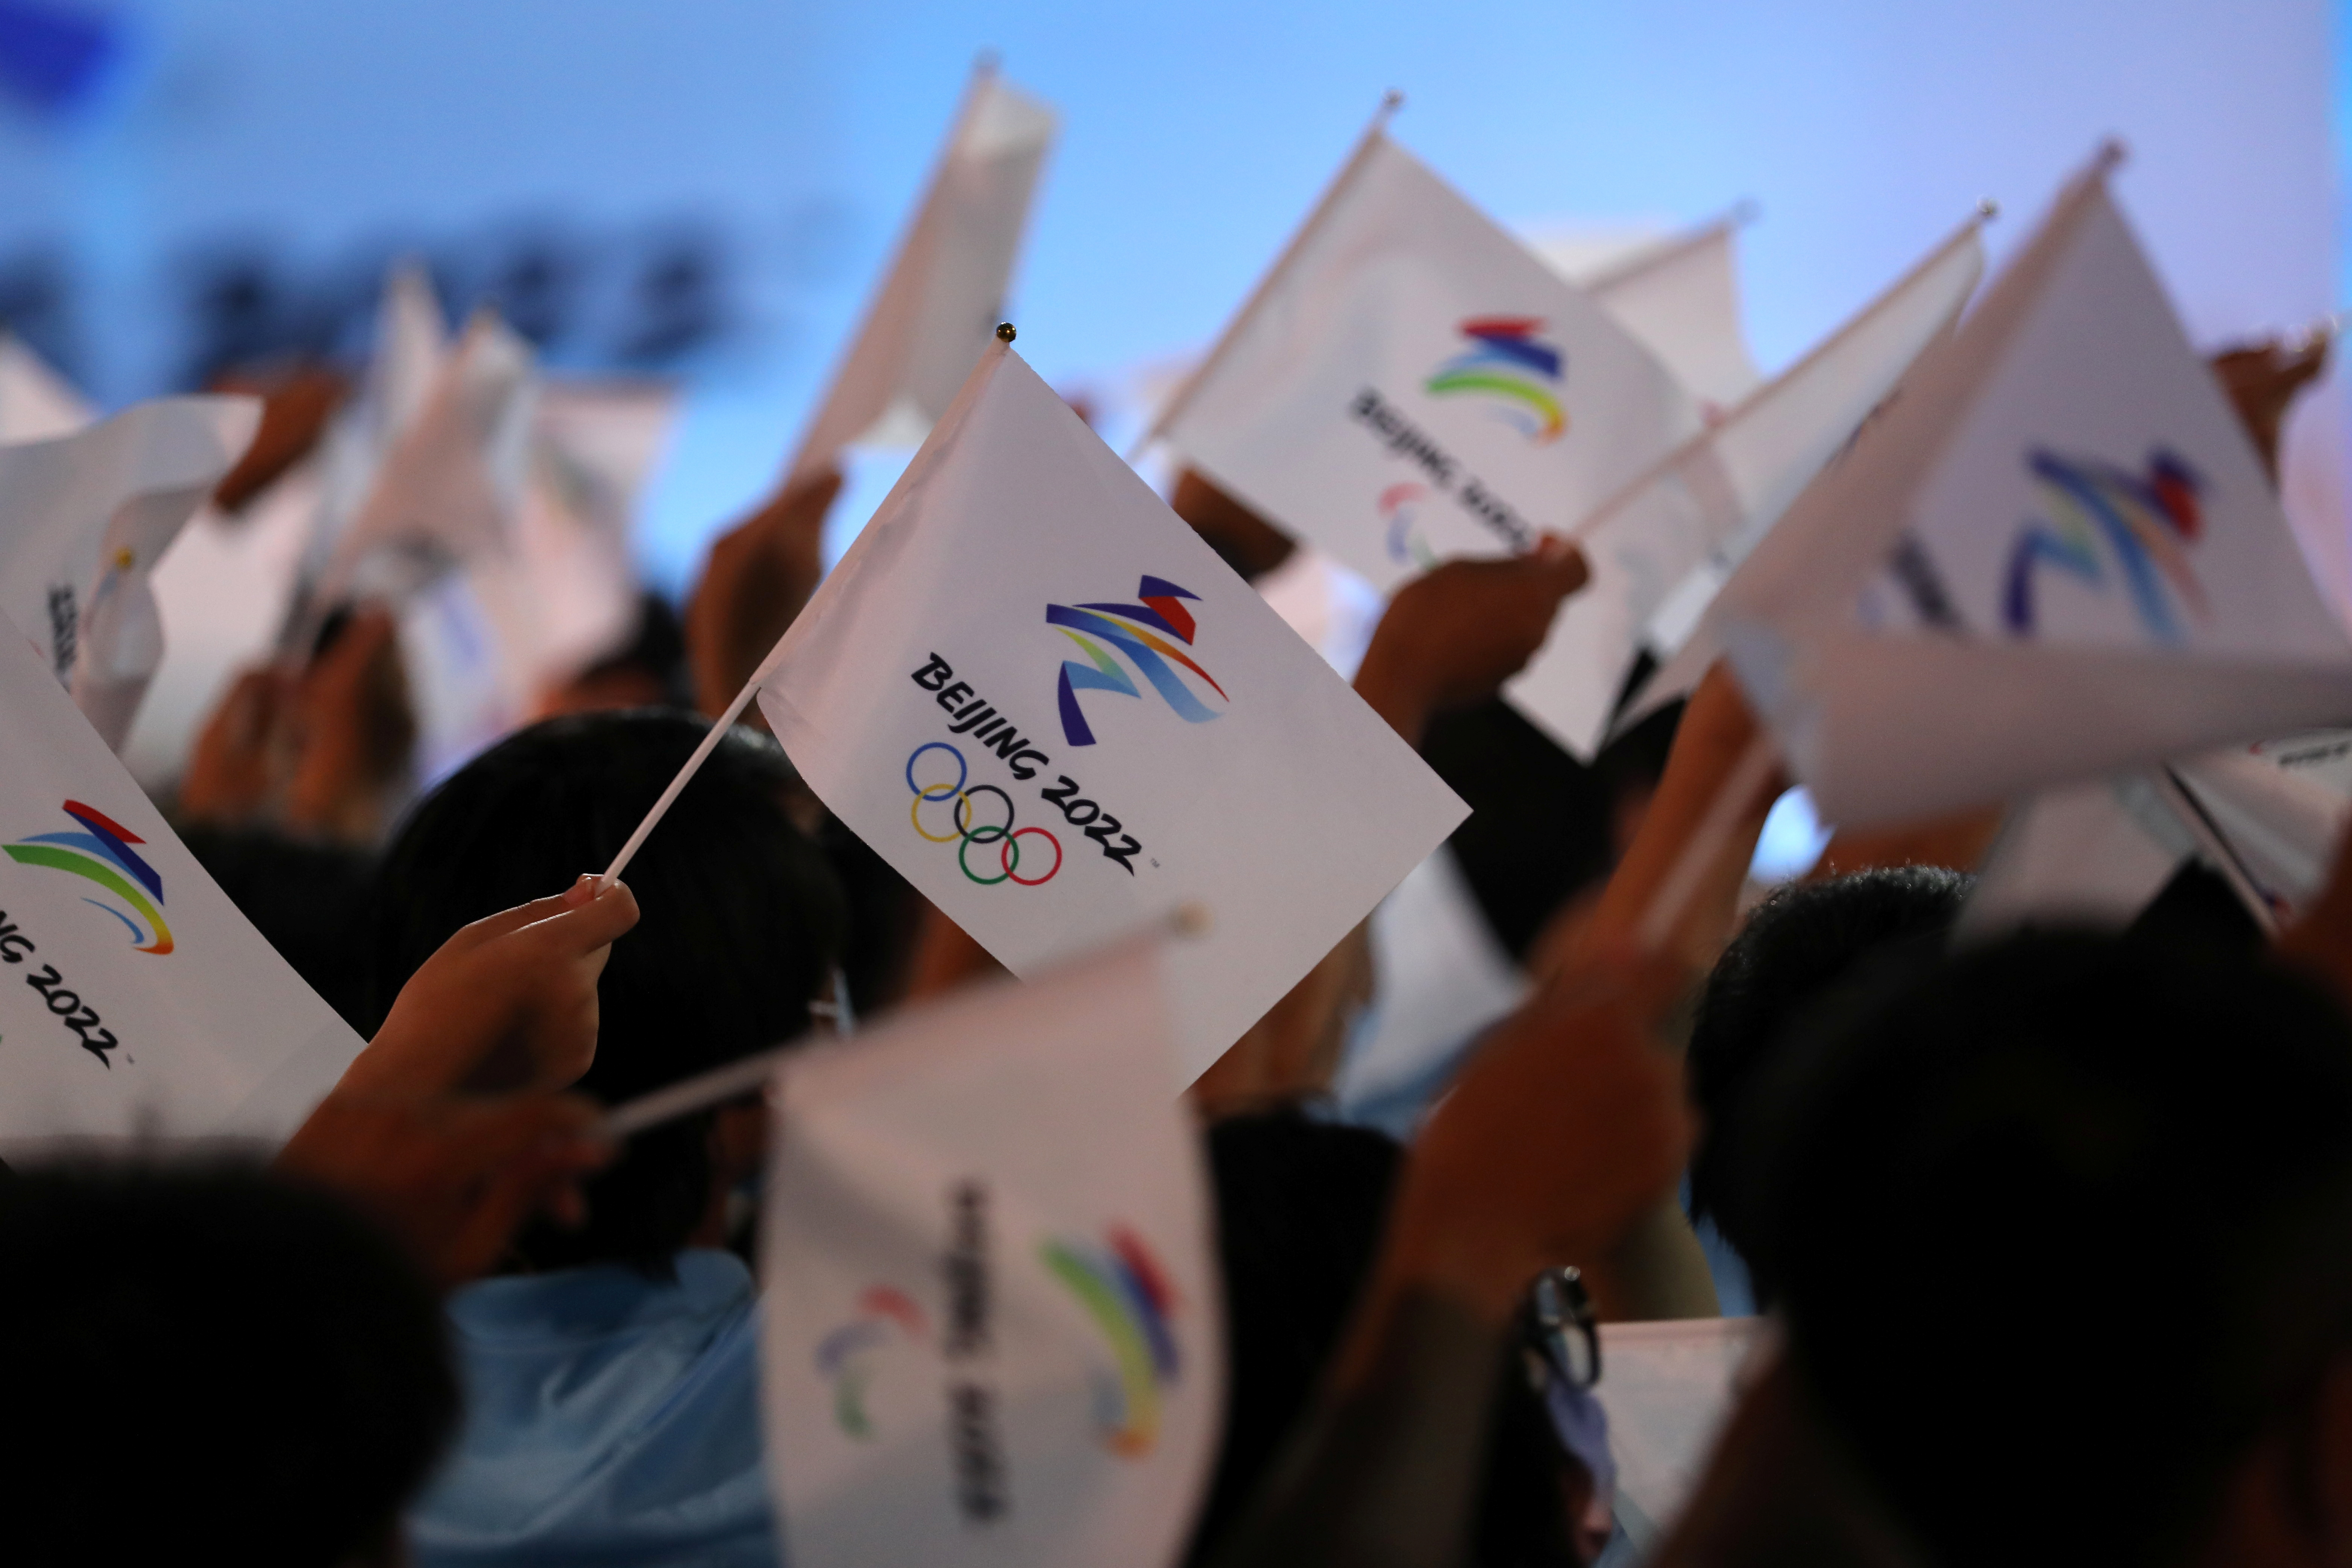 Attendees wave flags with the emblem of the Beijing 2022 Winter Olympic Games at a ceremony unveiling the slogan, in Beijing, China September 17, 2021. REUTERS/Tingshu Wang